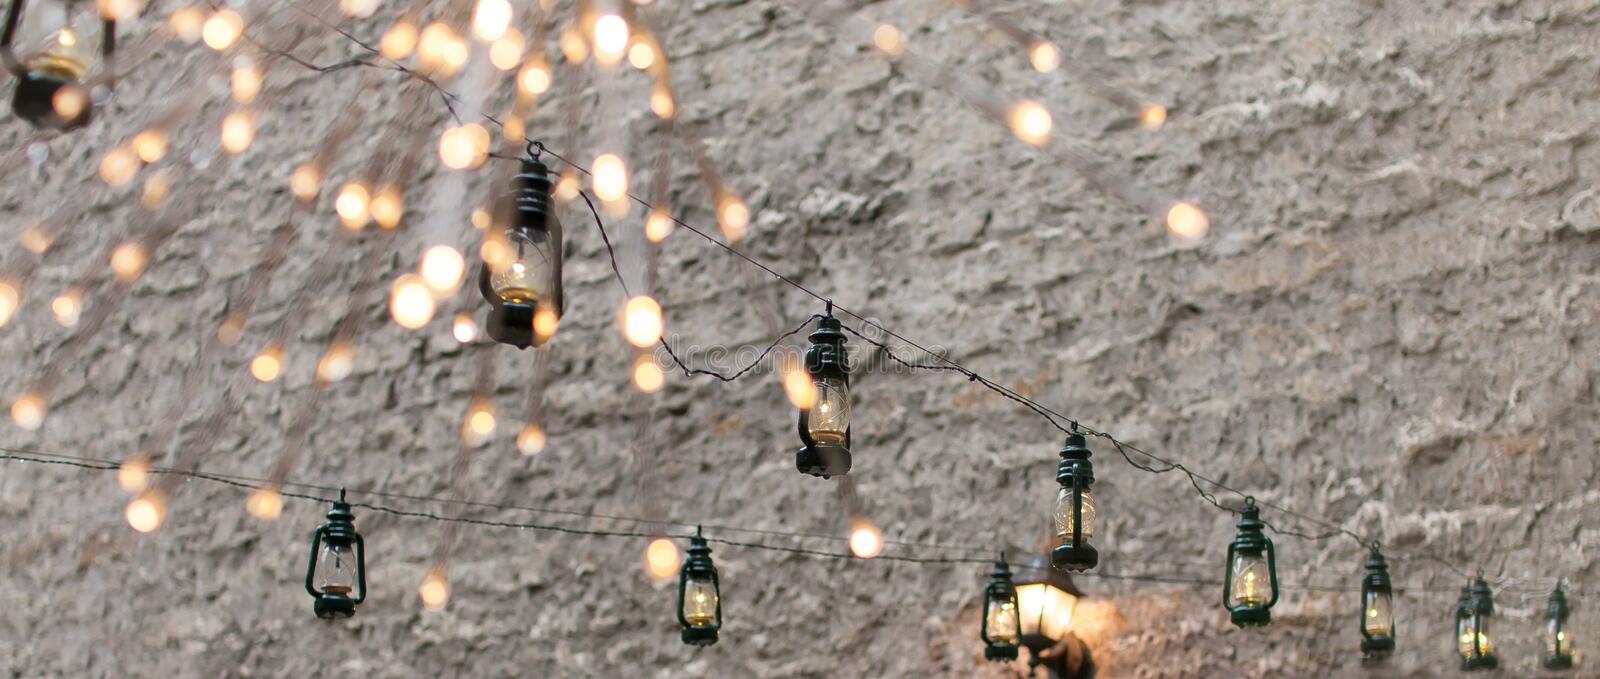 Street lights garlands lanterns decoration in the old town. Hanging outside royalty free stock photo